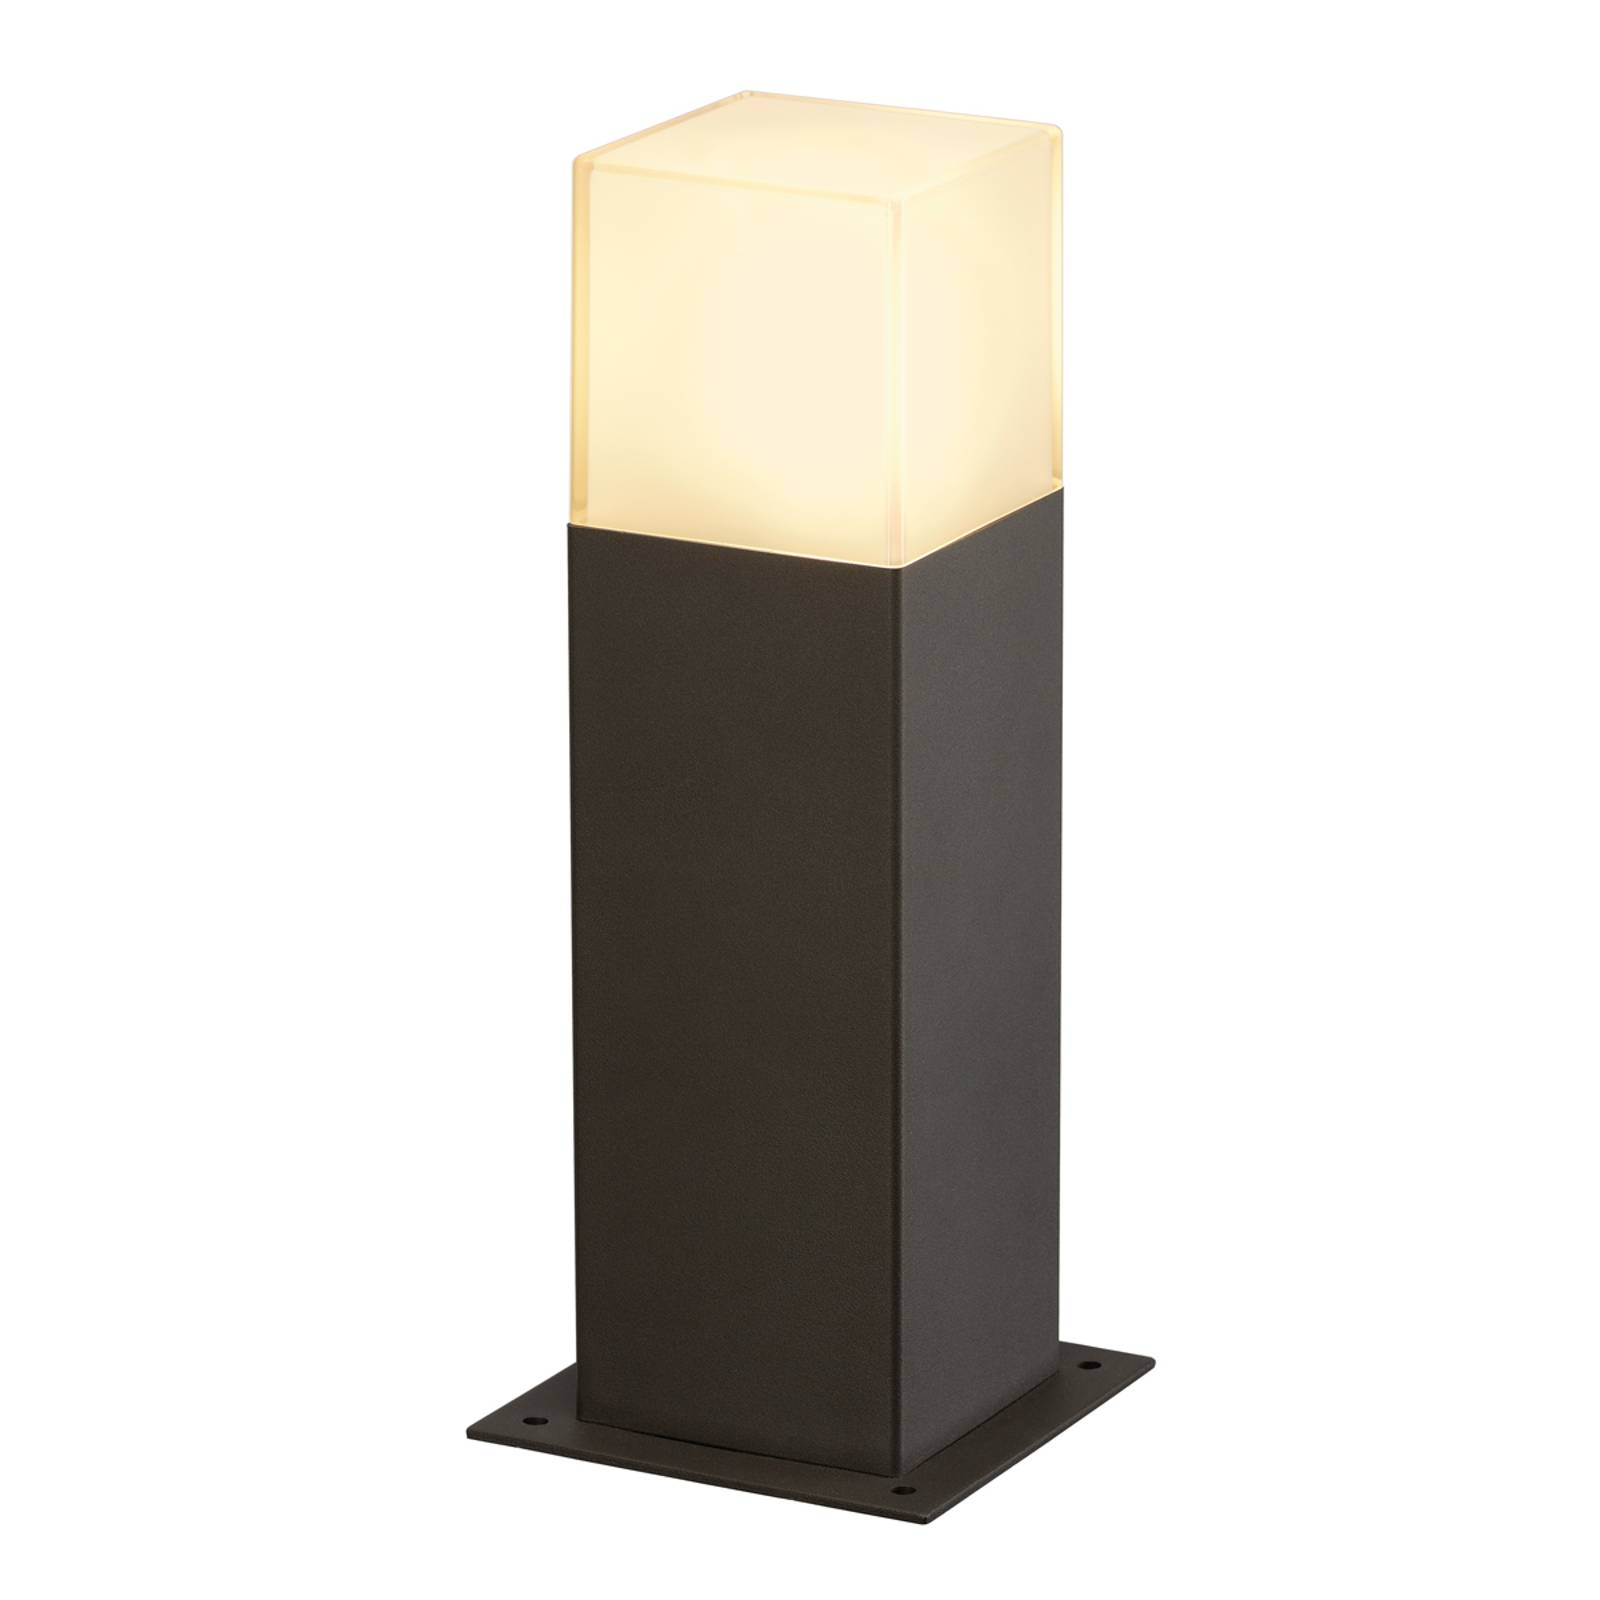 Grafit Contemporary Pillar Lamp from SLV